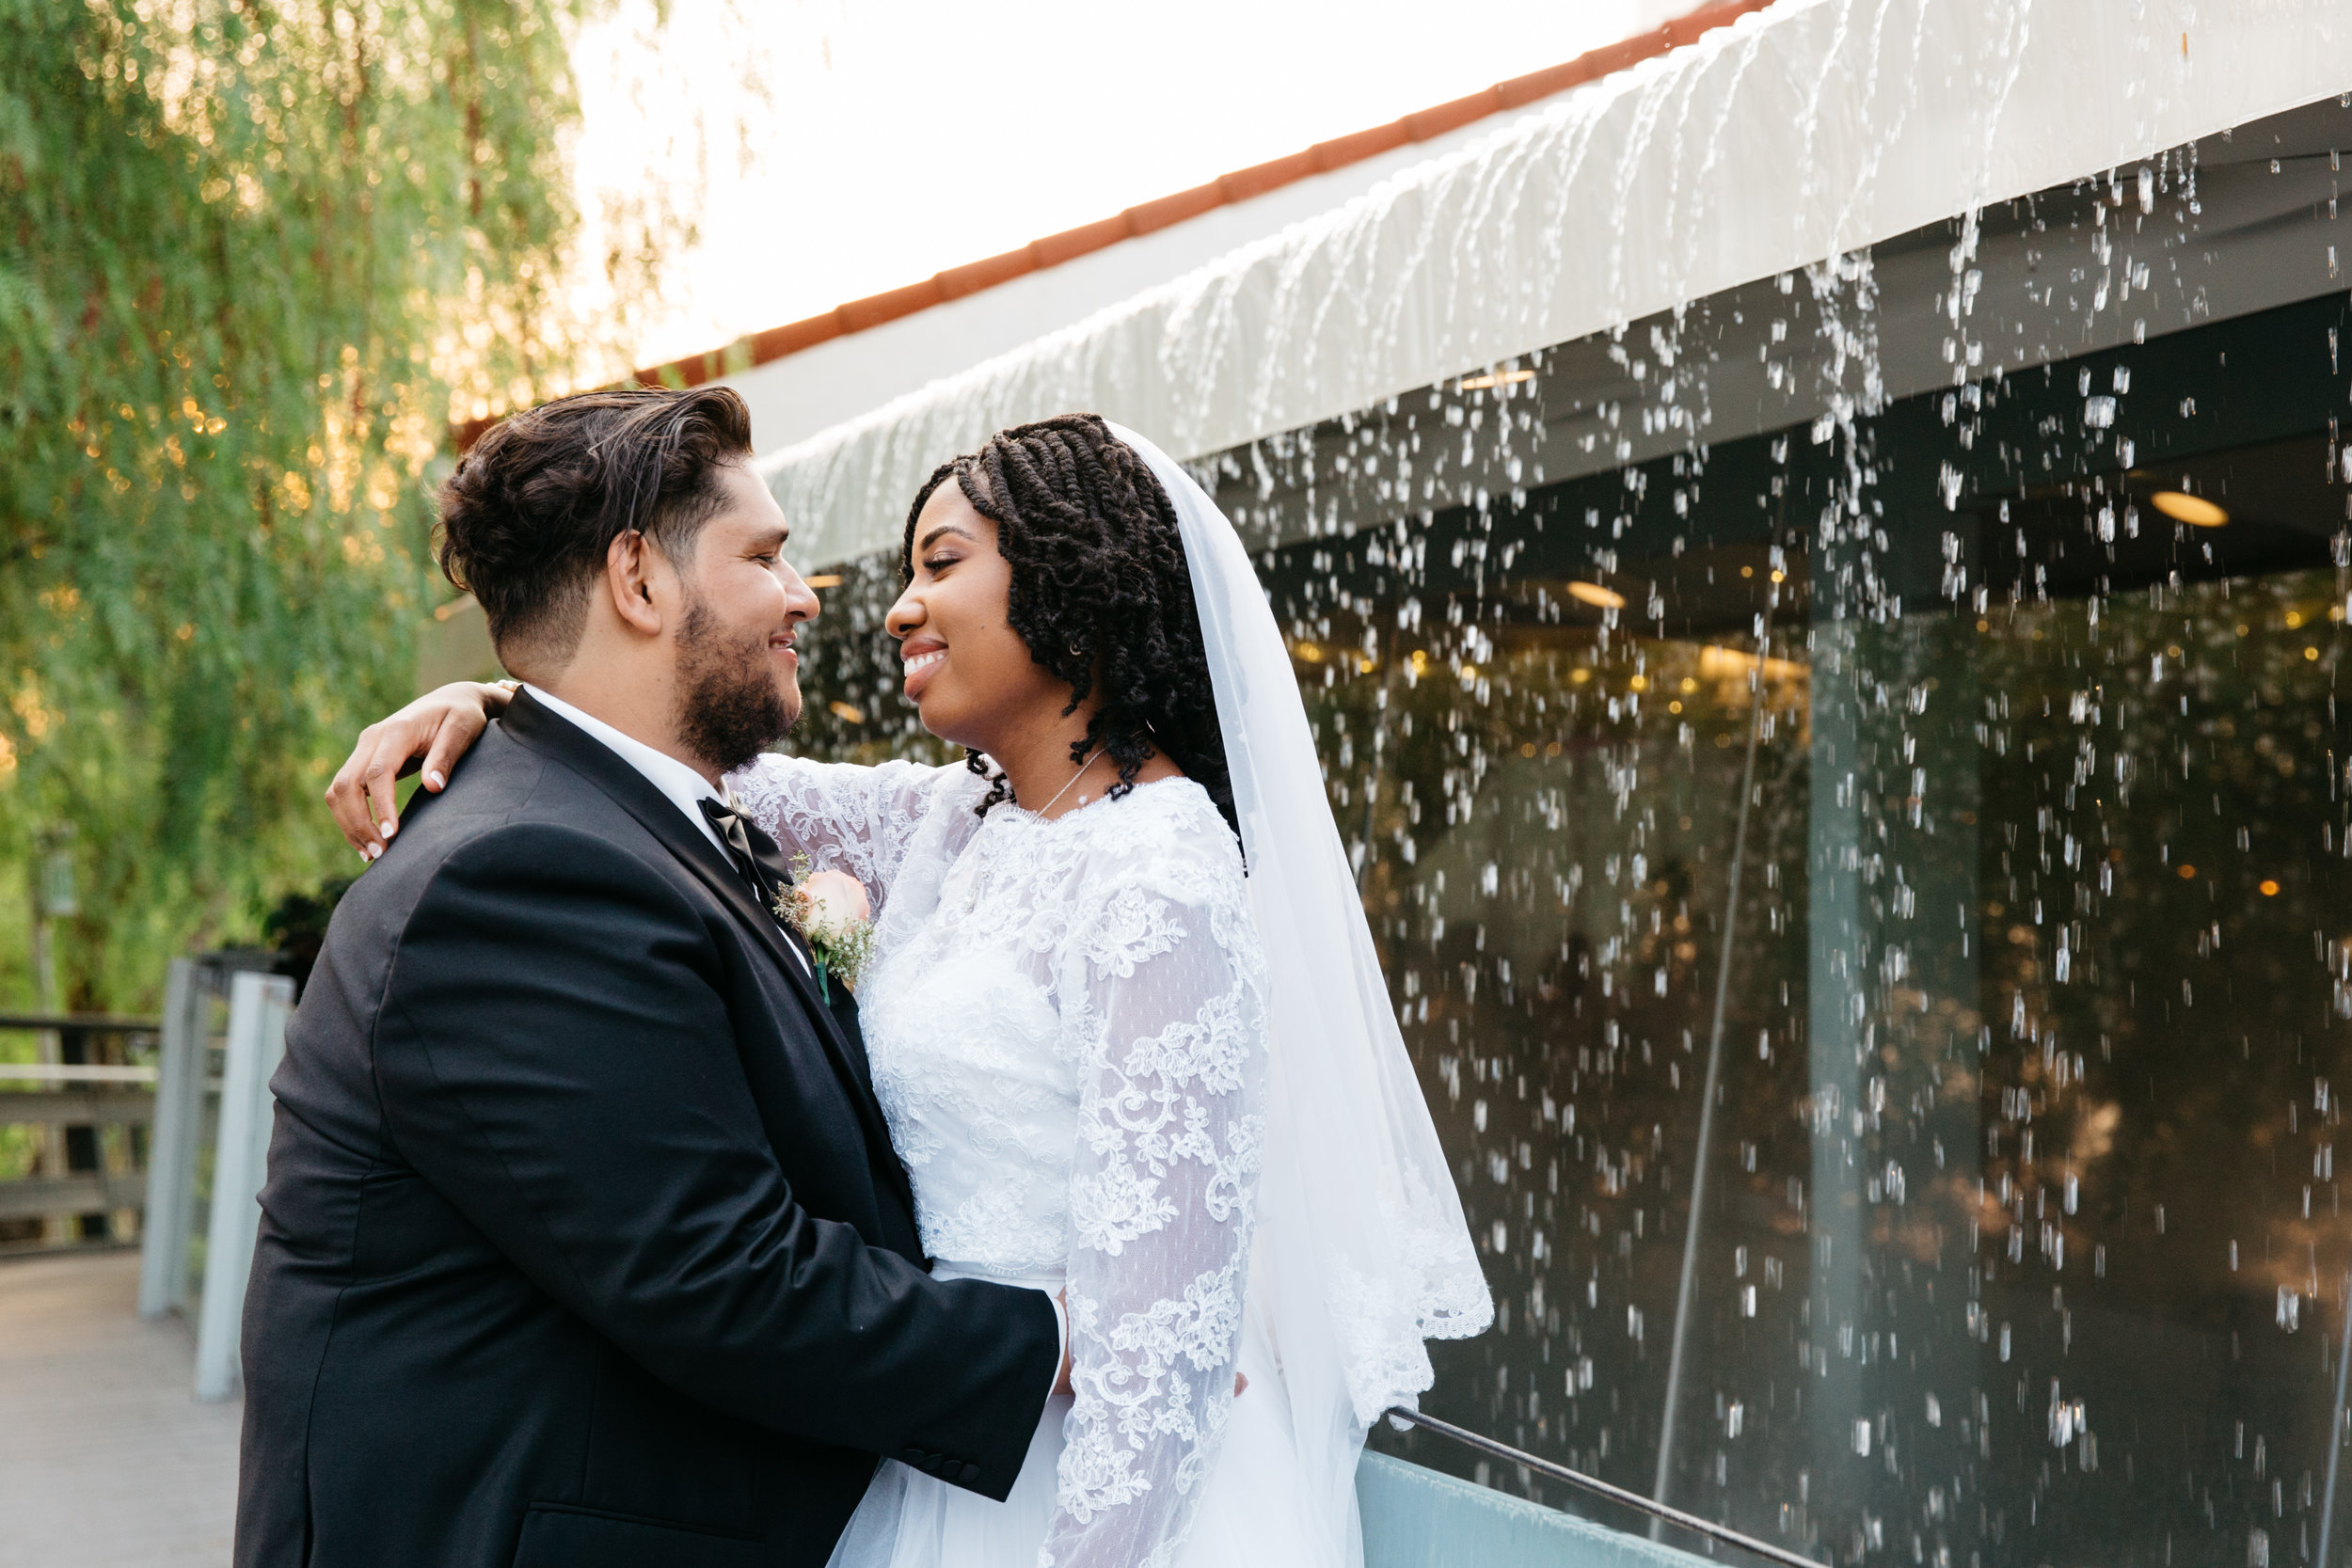 The Vineyard Wedding Jenna Bells and Laces Photography-54.jpg